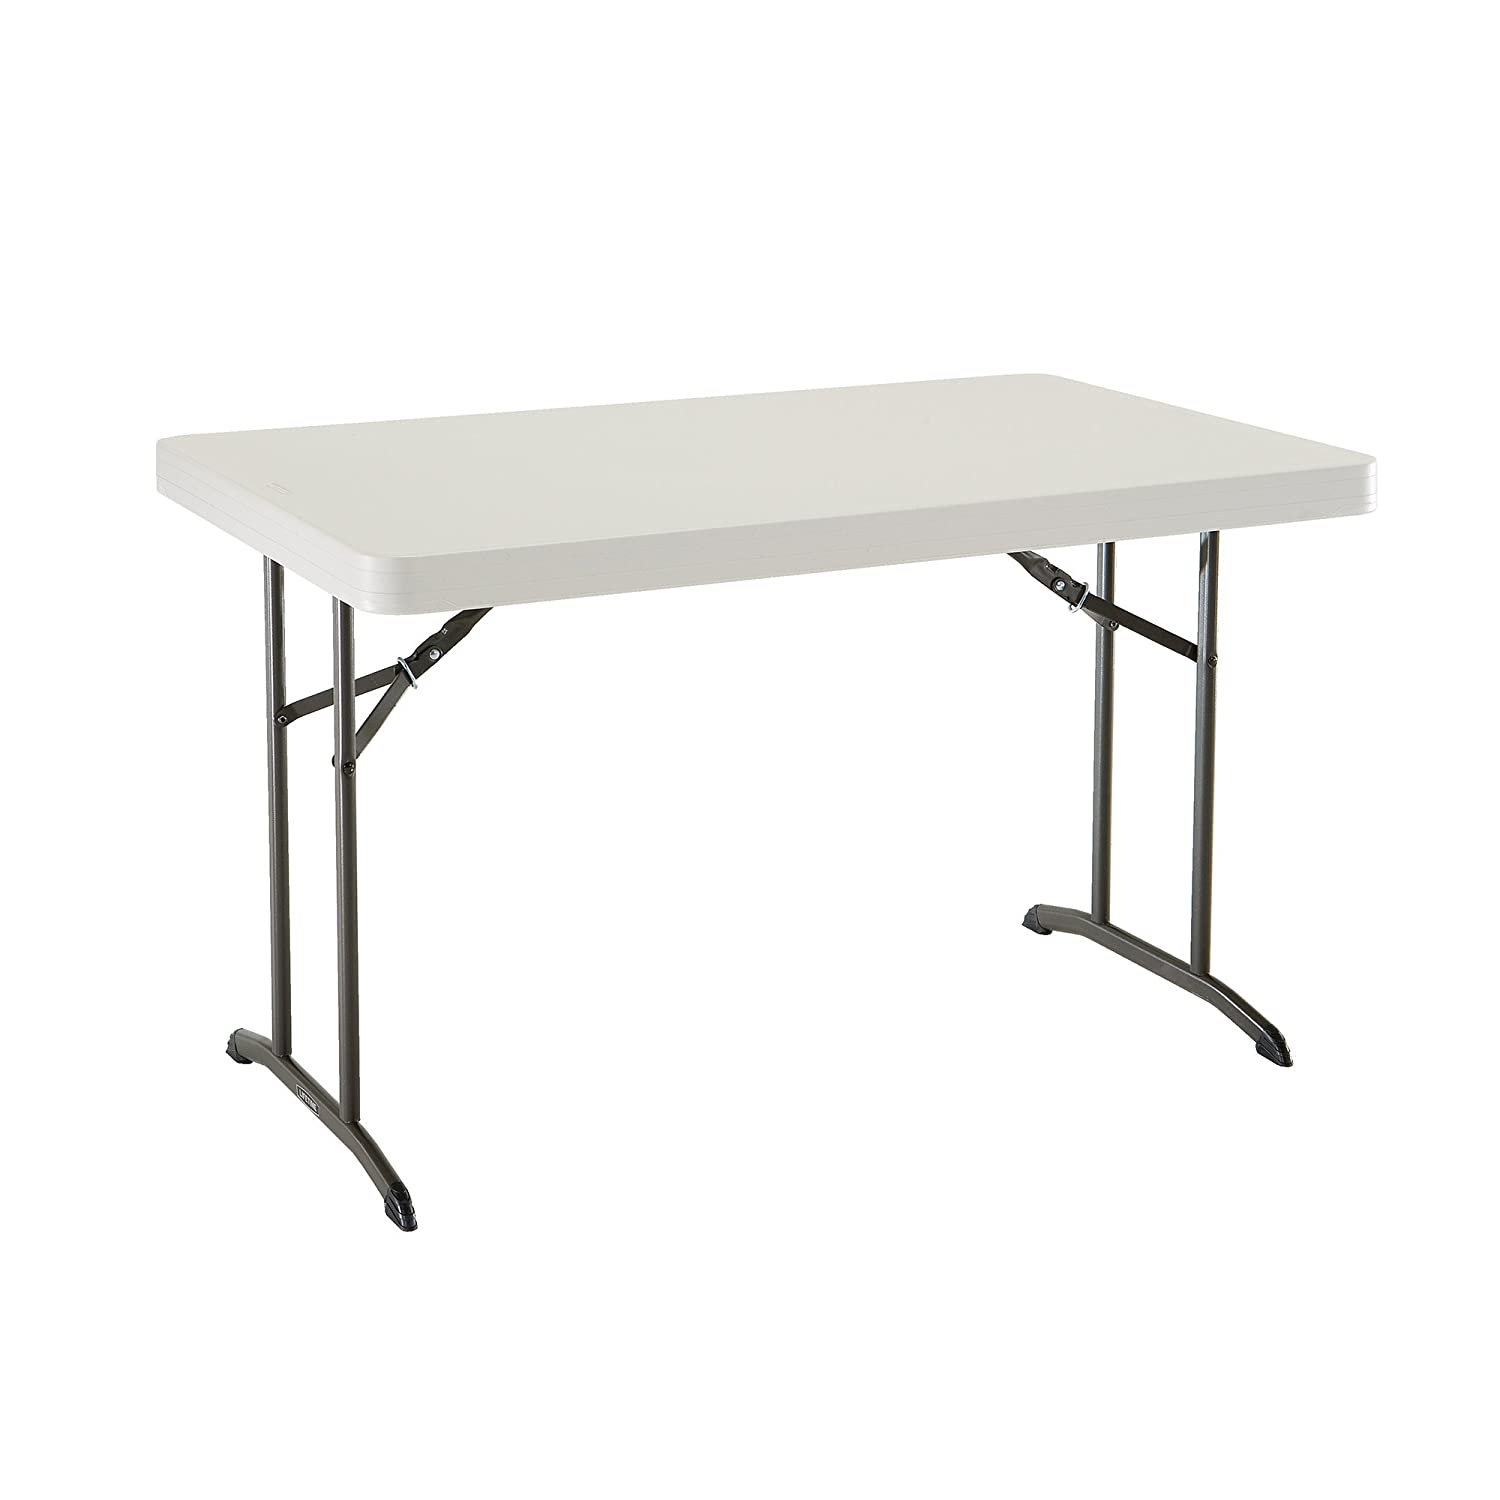 Lifetime 80568 48 x 30 Wide Folding Utility Table